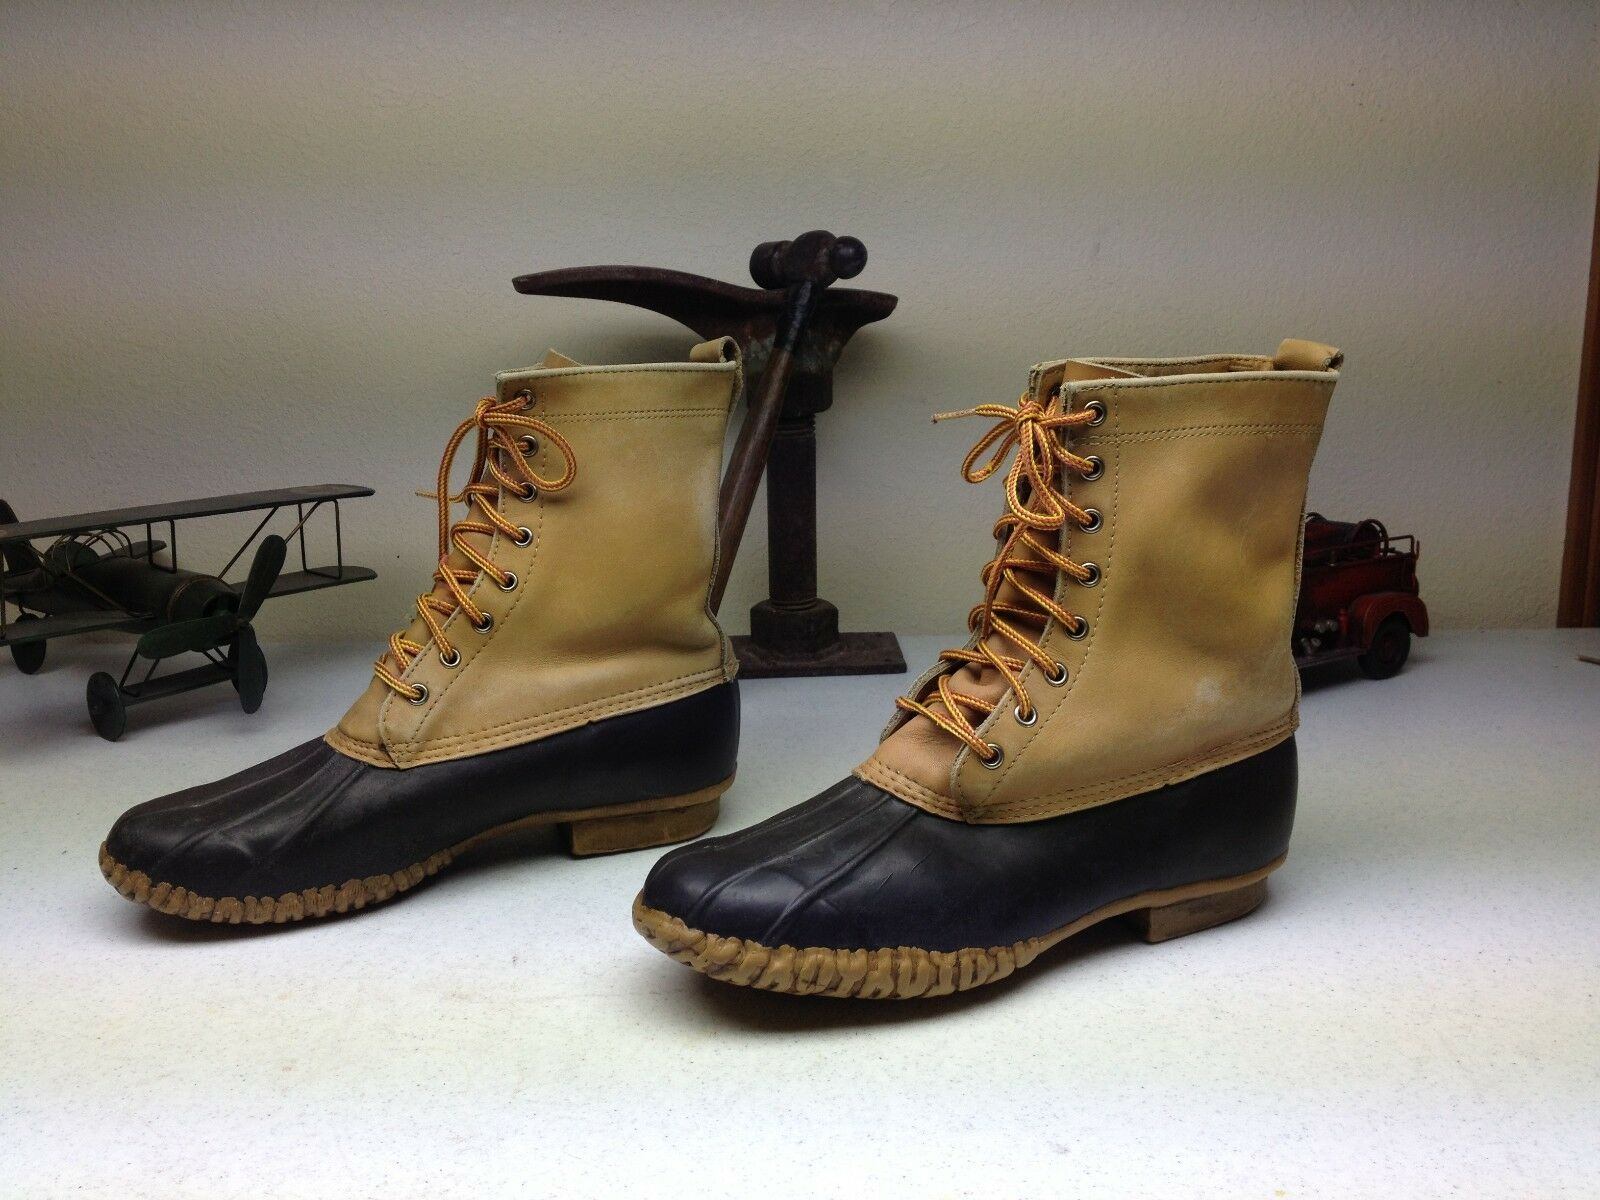 BROWN LEATHER BLACK RUBBER DISTRESSED WINTER DUCK HUNTING BOOTS SIZE 11 M